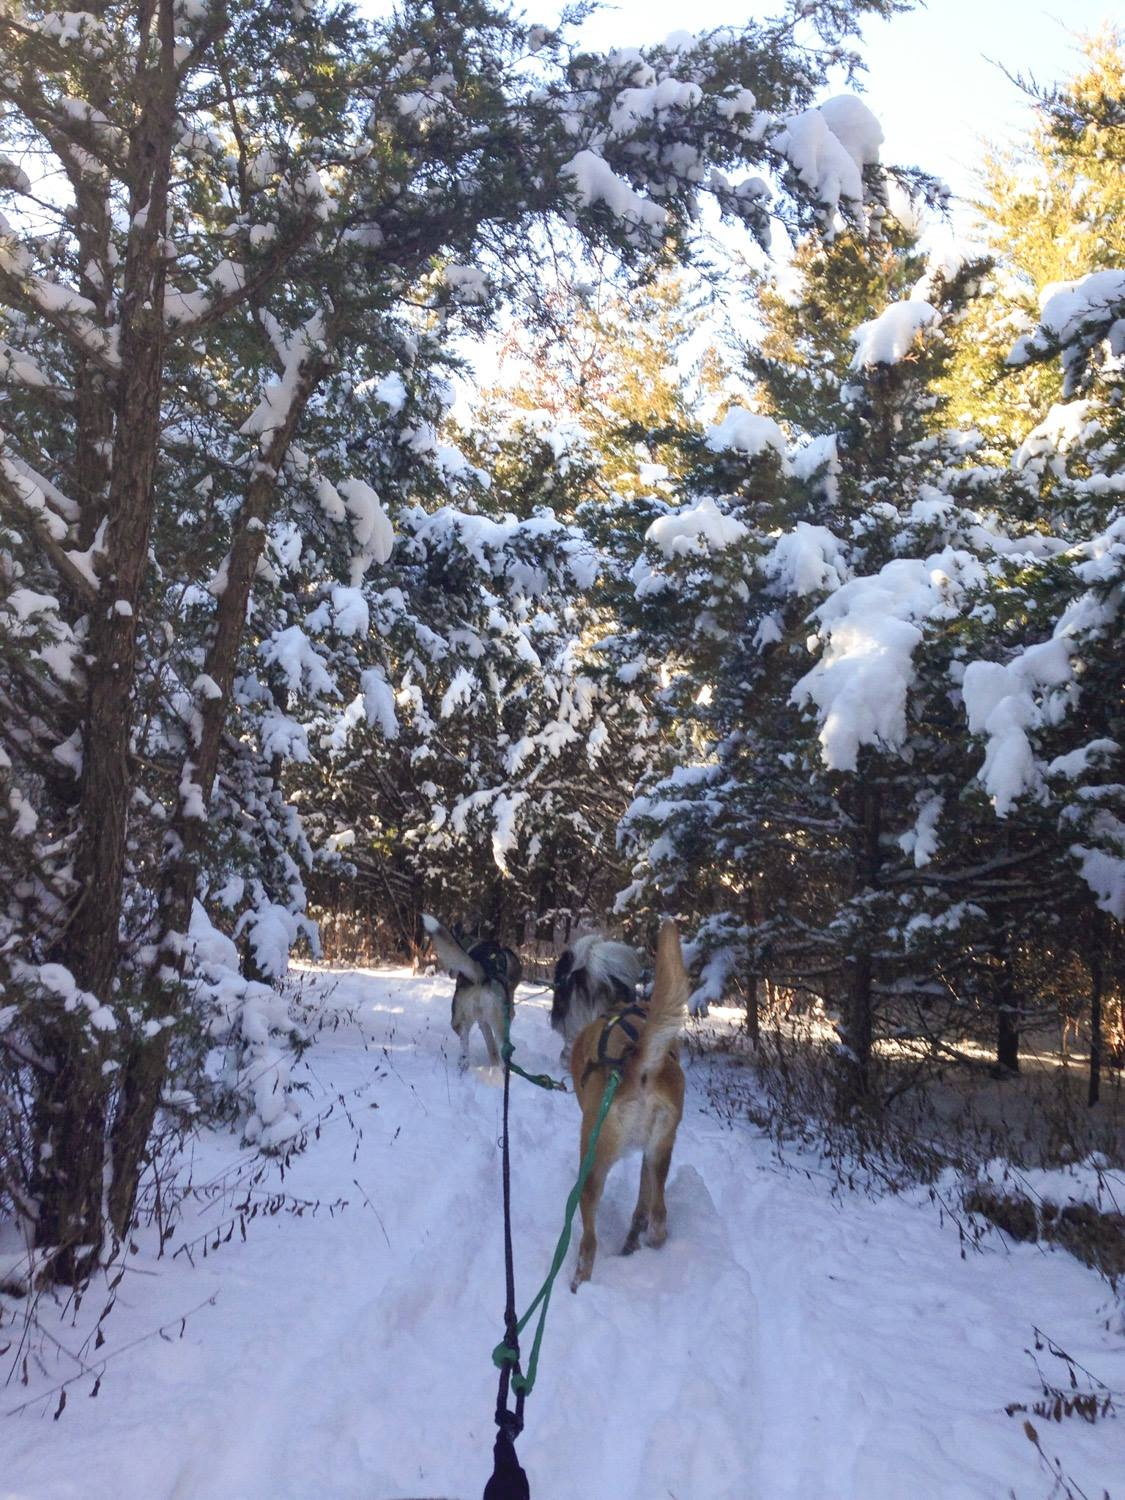 Navigating the winding trails through pines on the Red Trail.